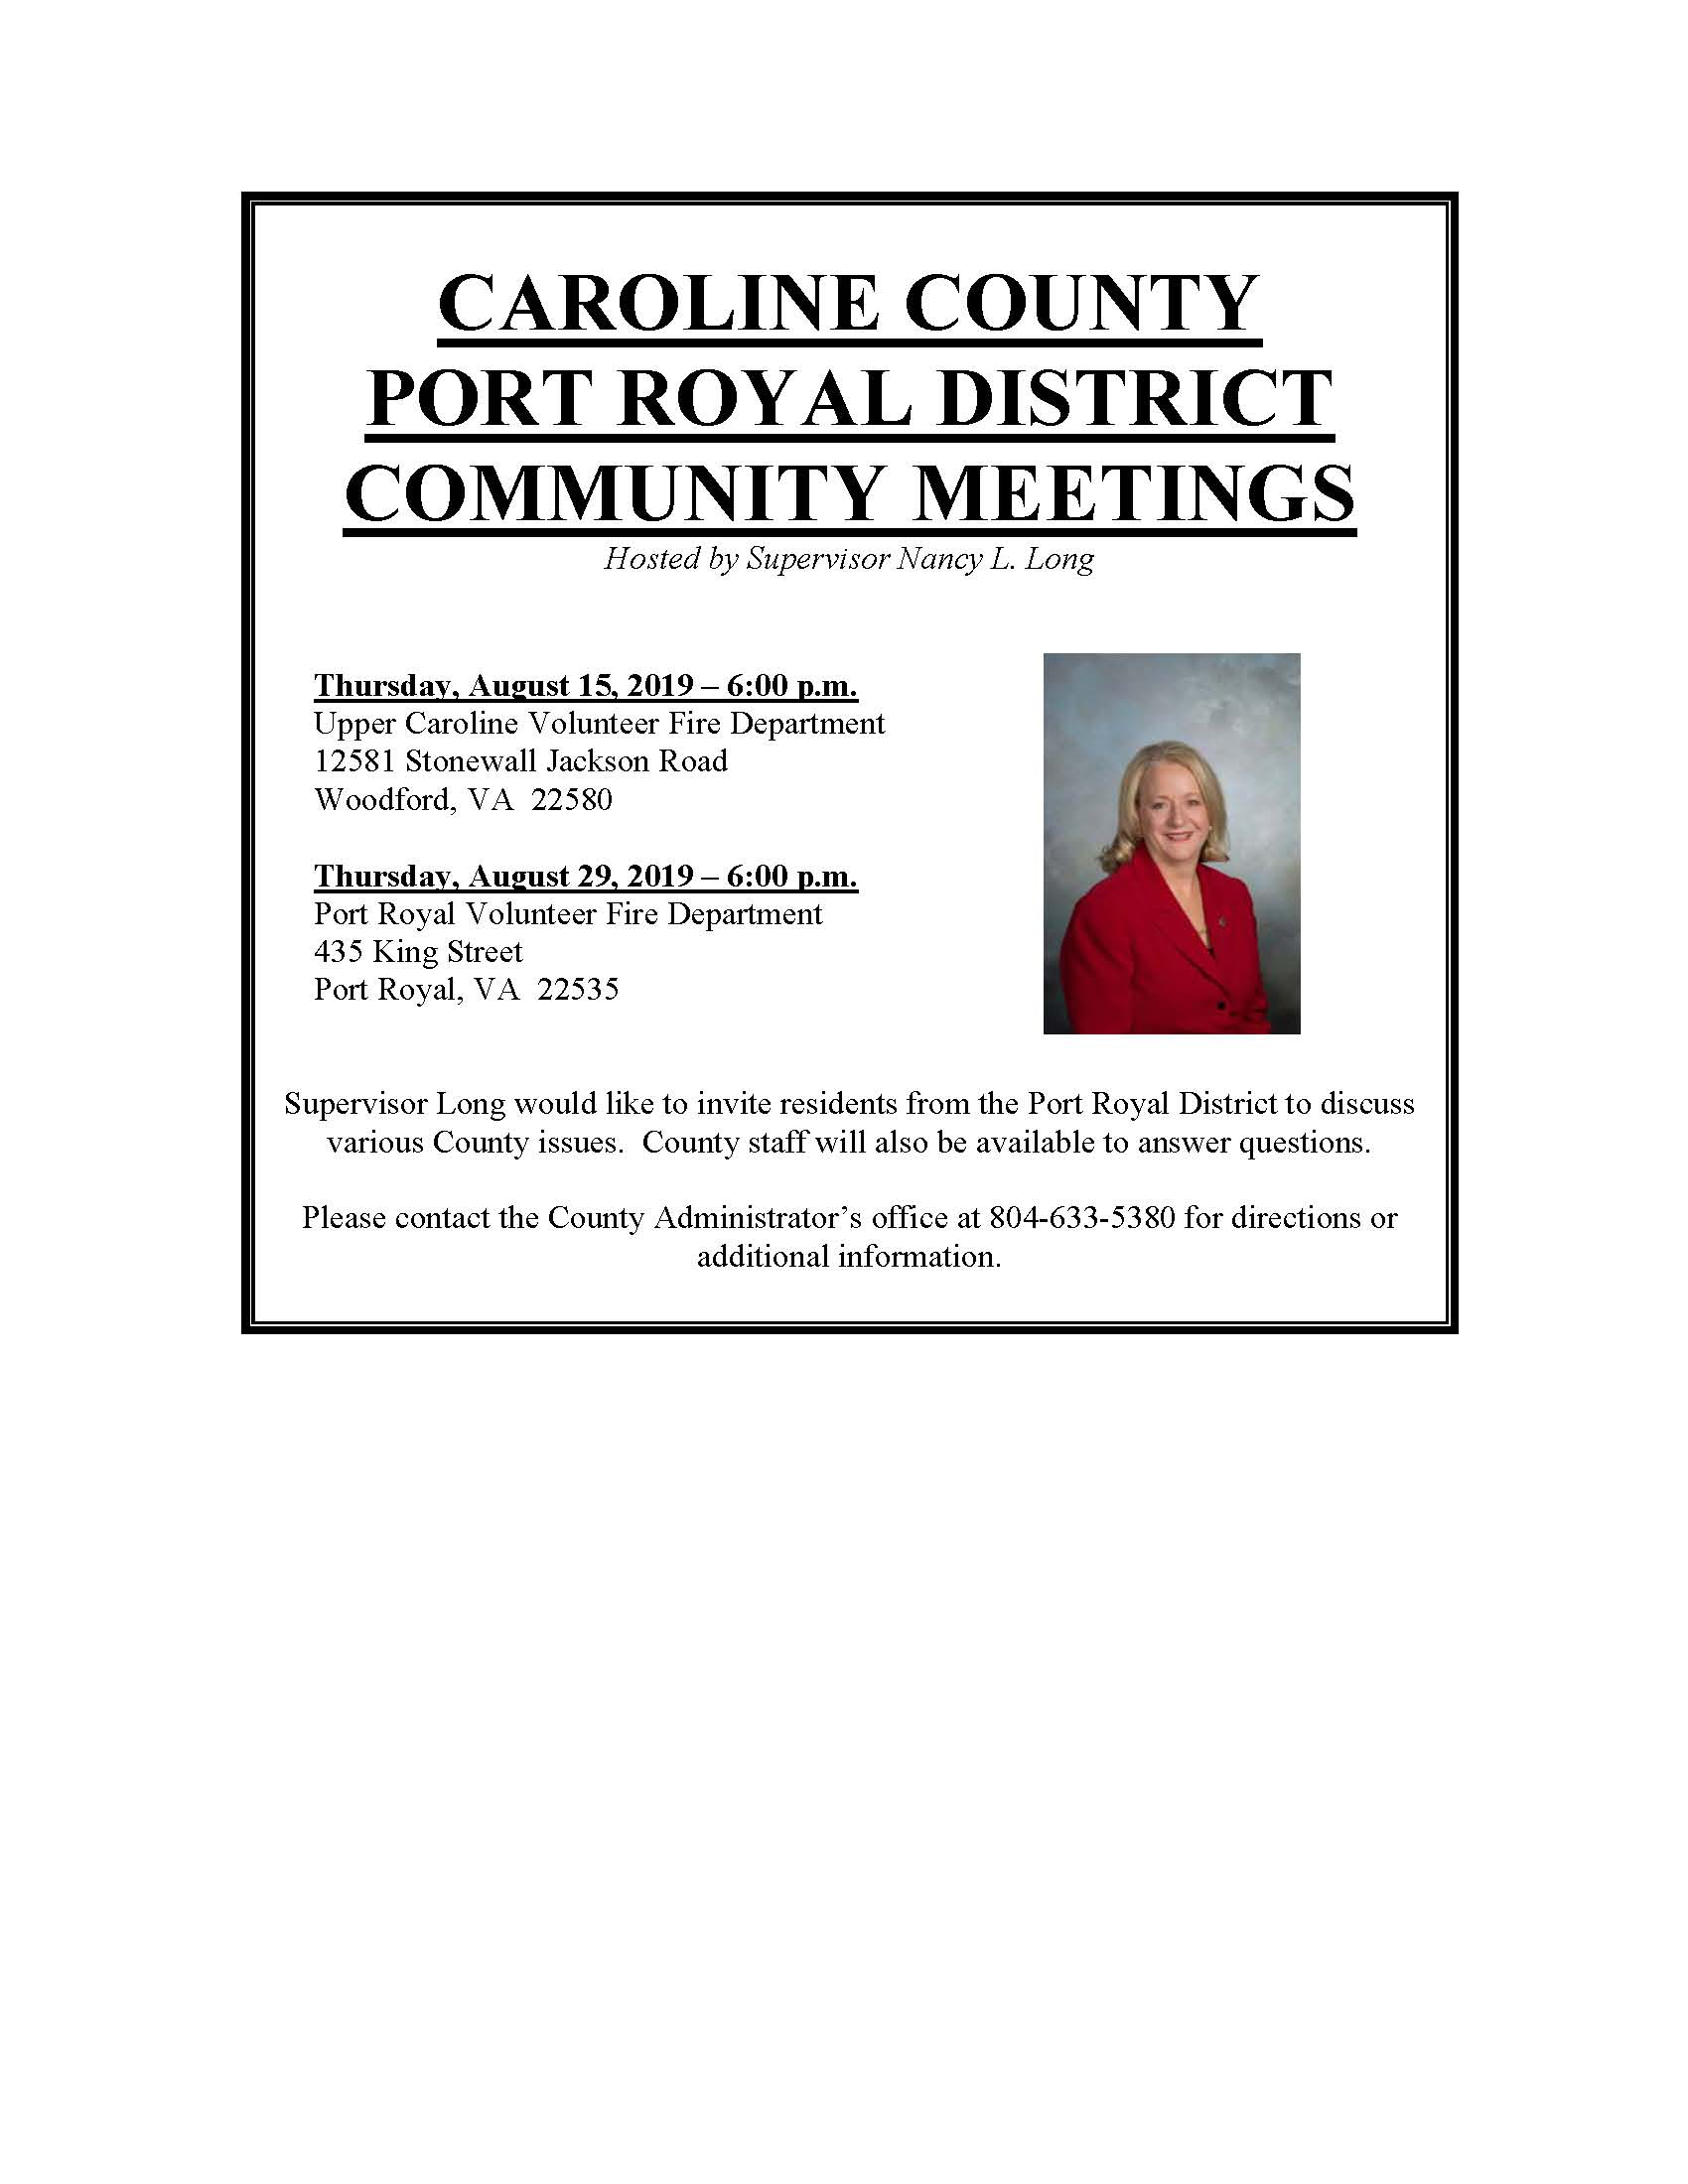 Port Royal District Community Meetings August 15 and 29, 2019